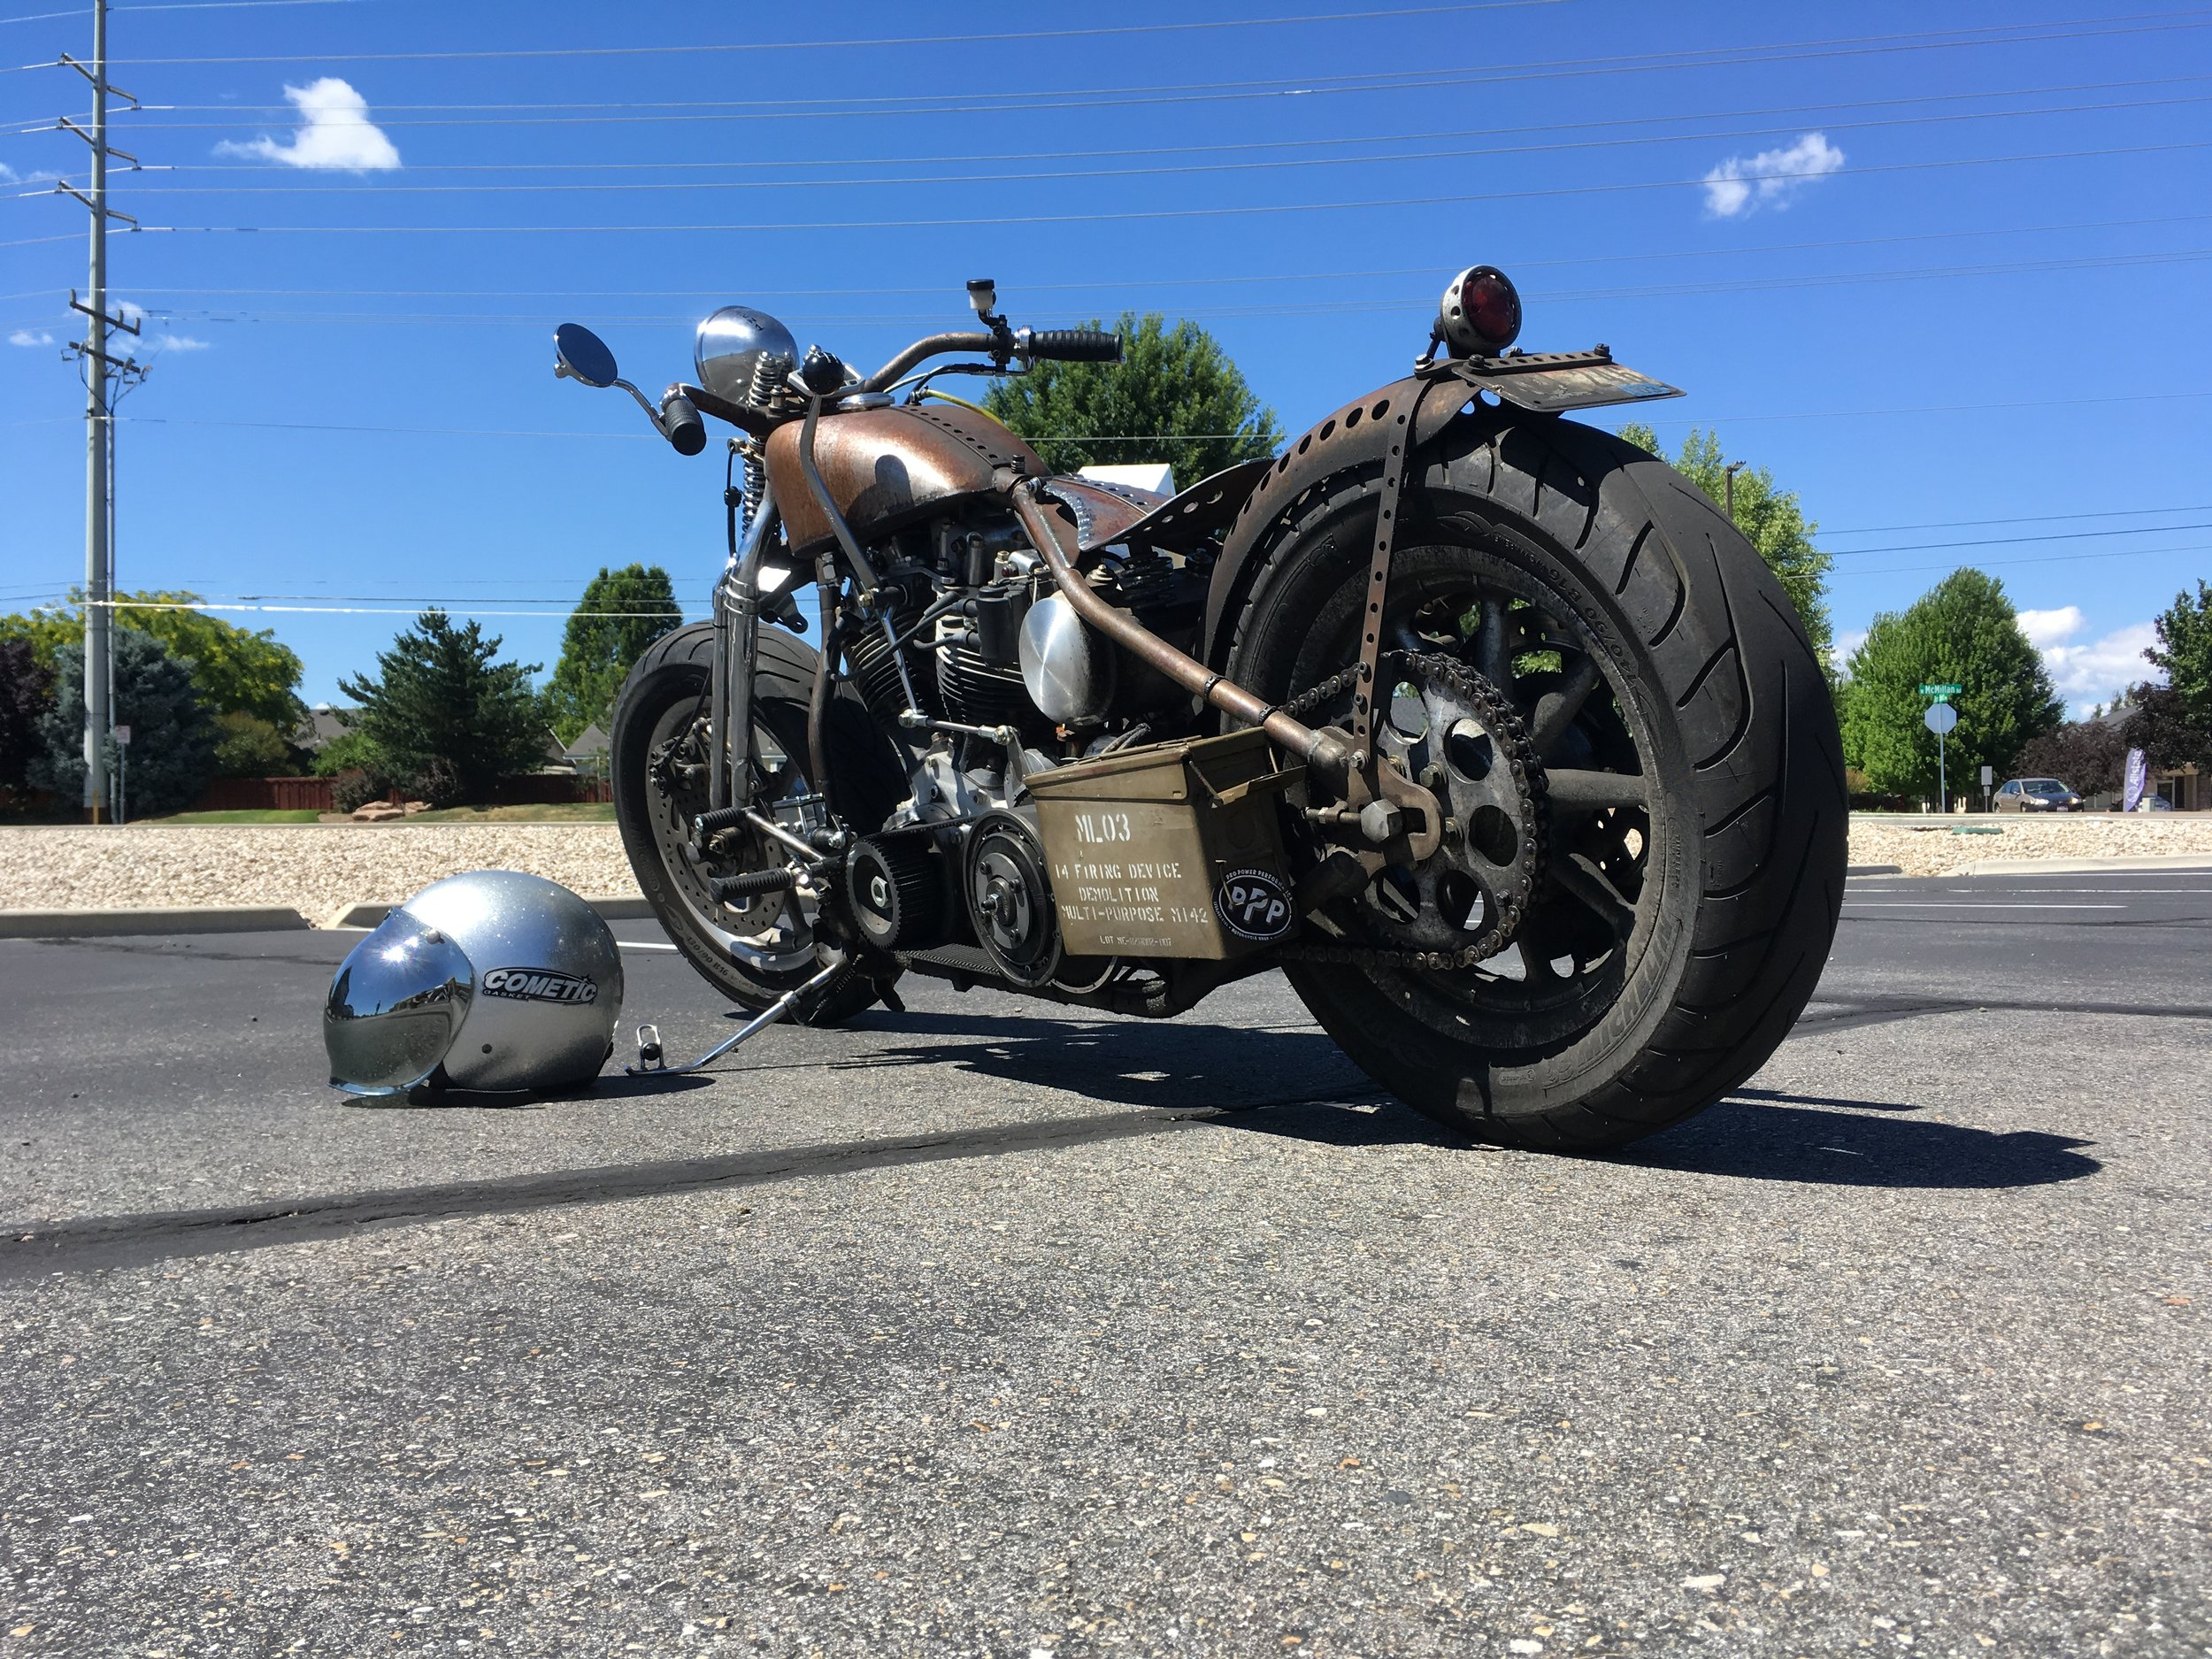 1973 Shovelhead with hand shift